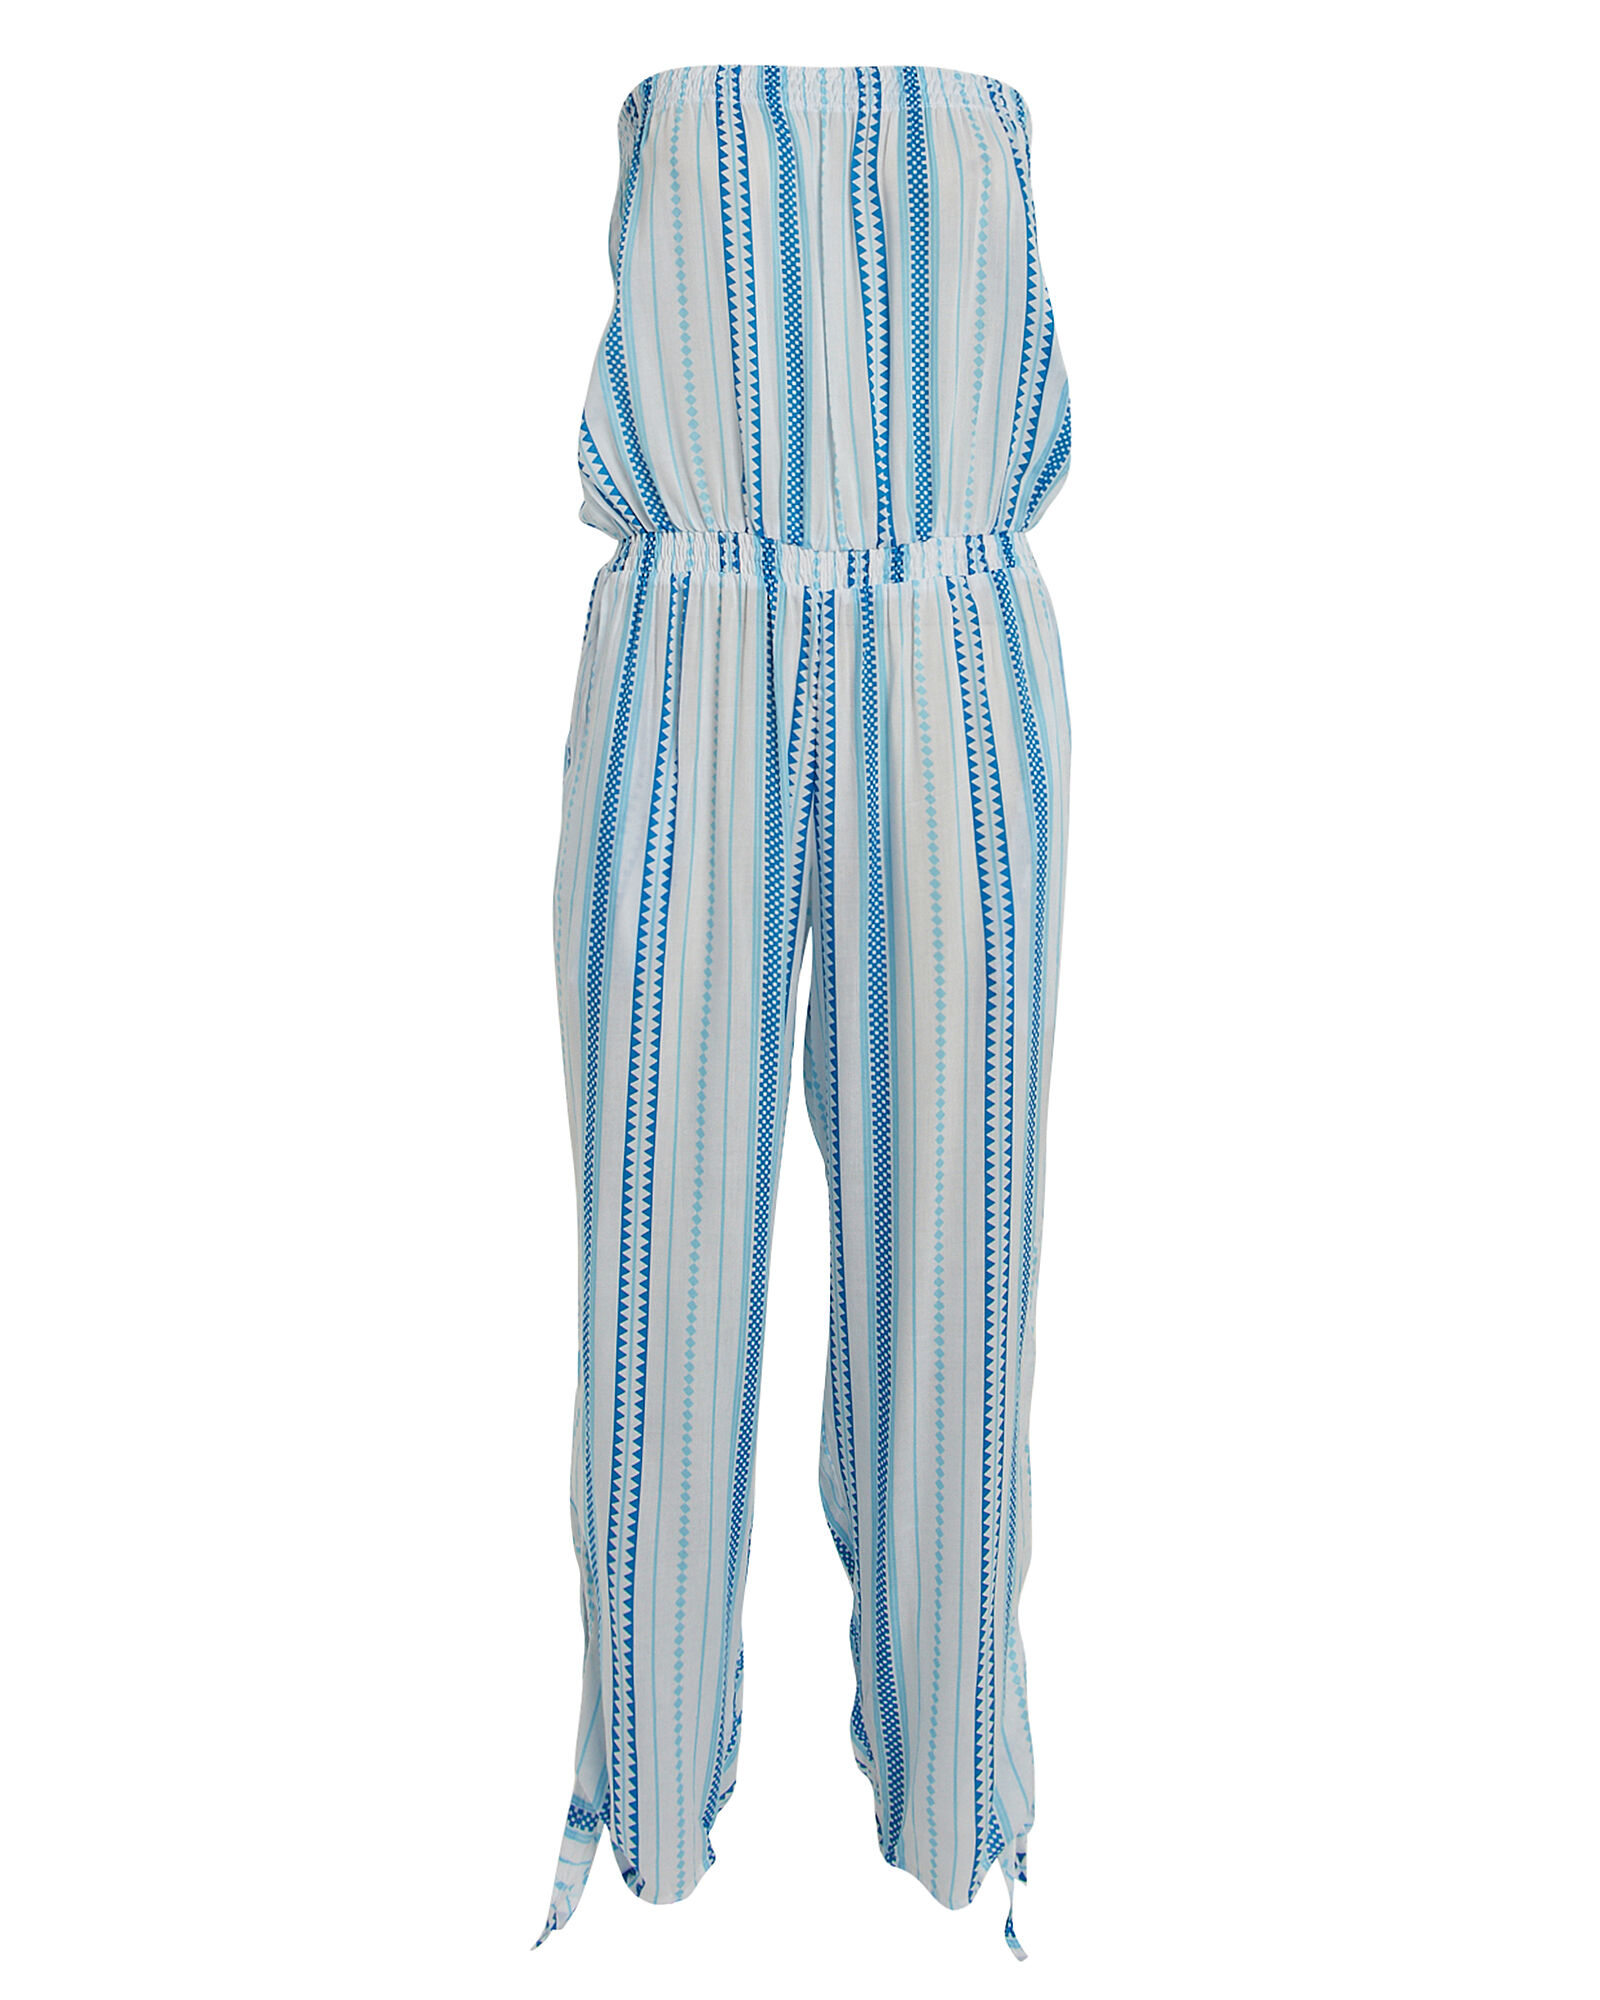 Maya Strapless Horizon Jumpsuit, AQUA/WHITE, hi-res